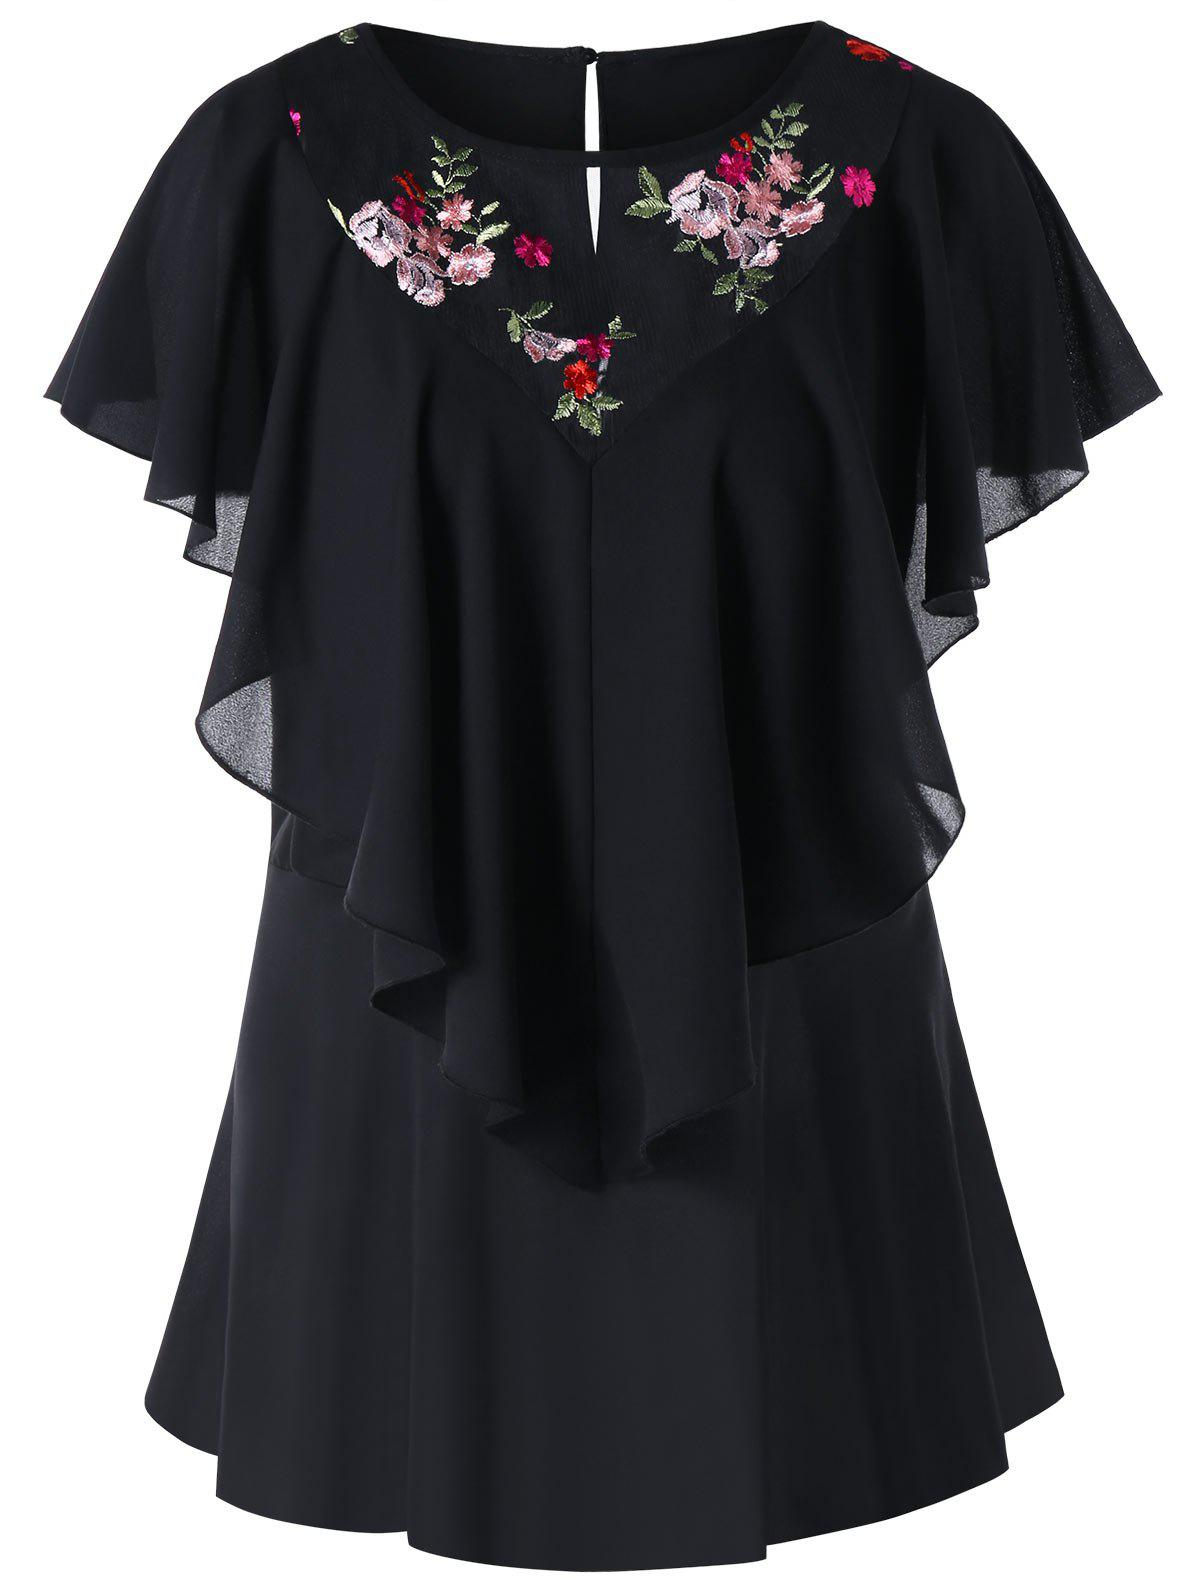 Plus Size Flounce Embroidered Mesh Panel Blouse flounce sleeve embroidered mesh dress